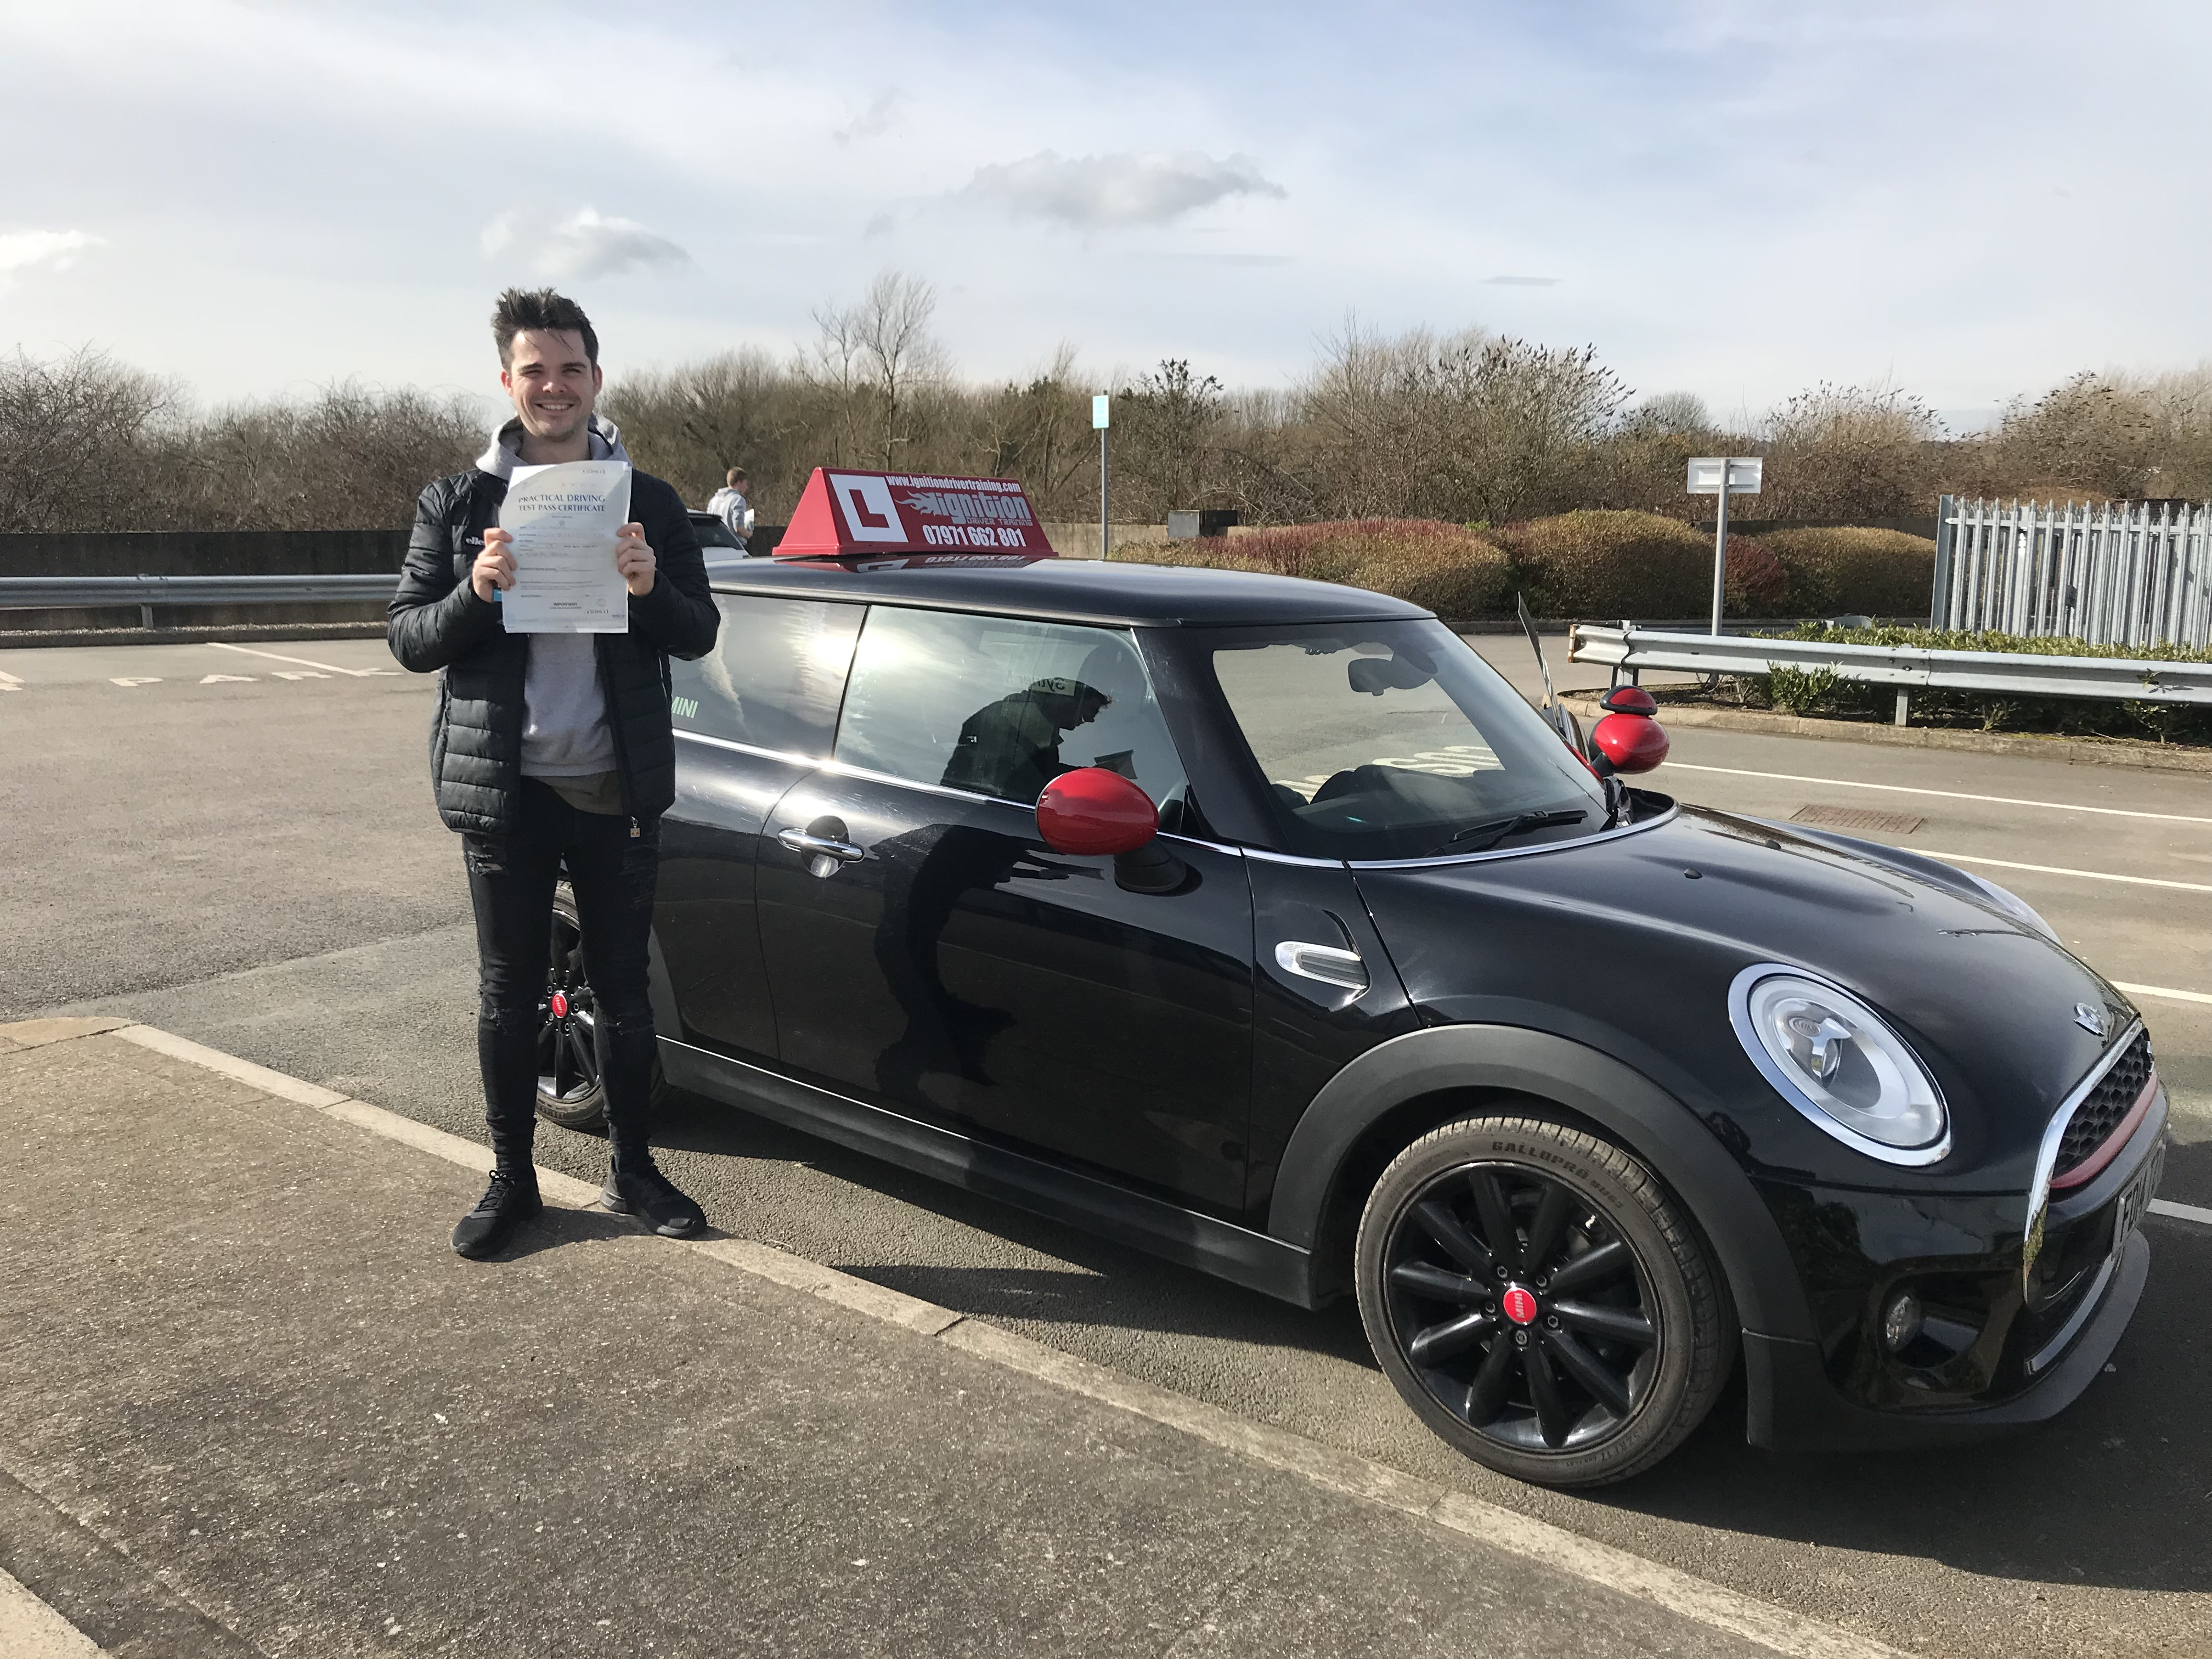 Kyle has passed first time!